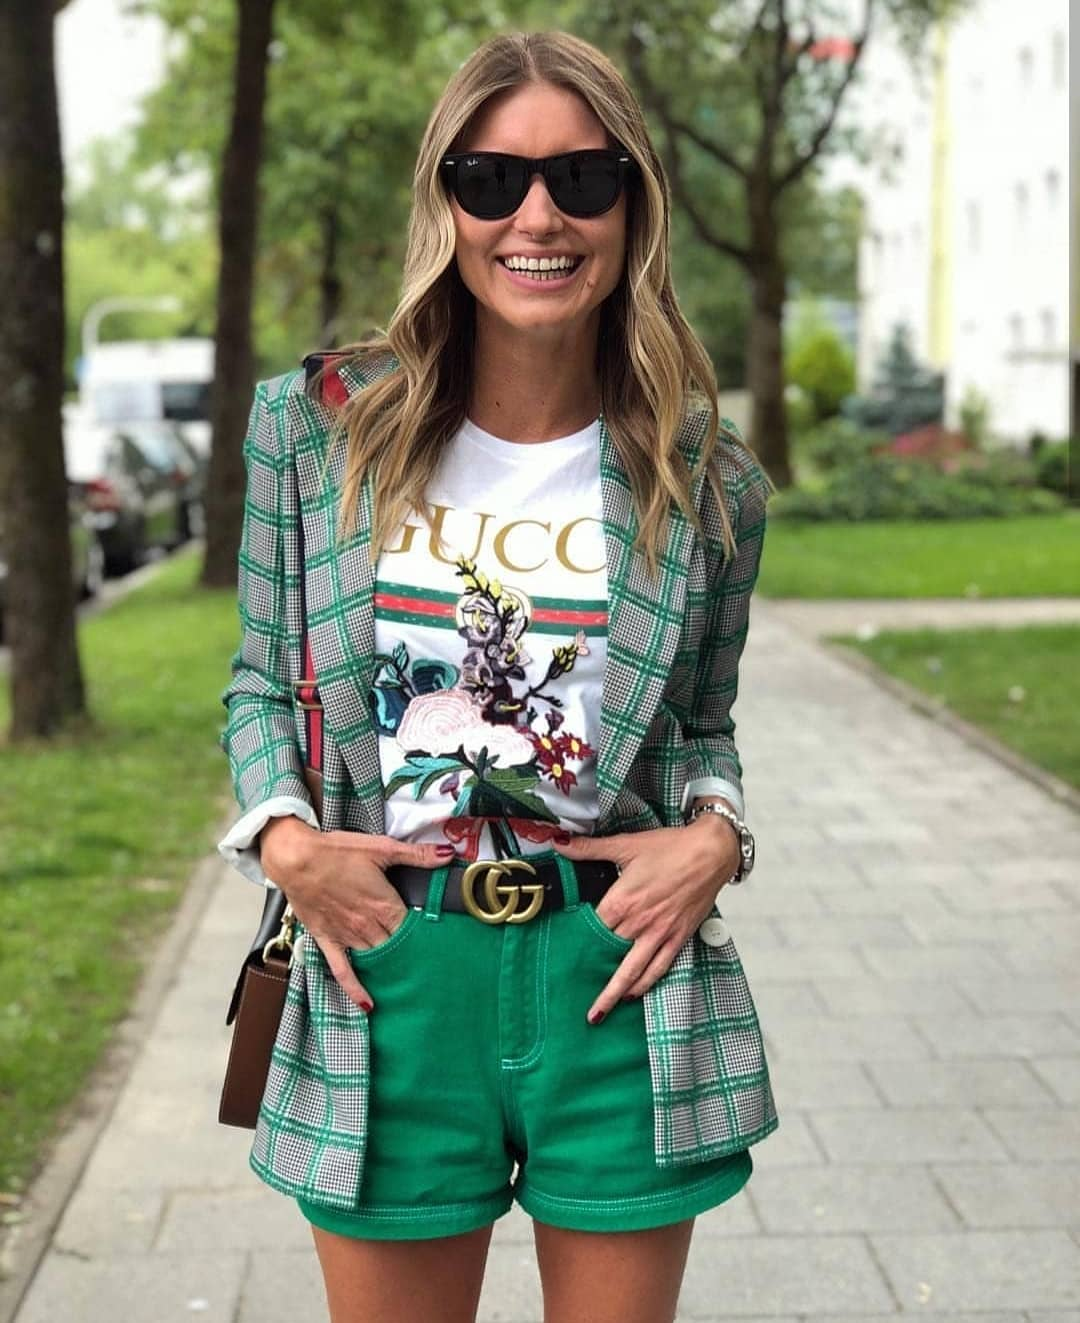 How To Wear Bright Green Shorts This Summer 2019